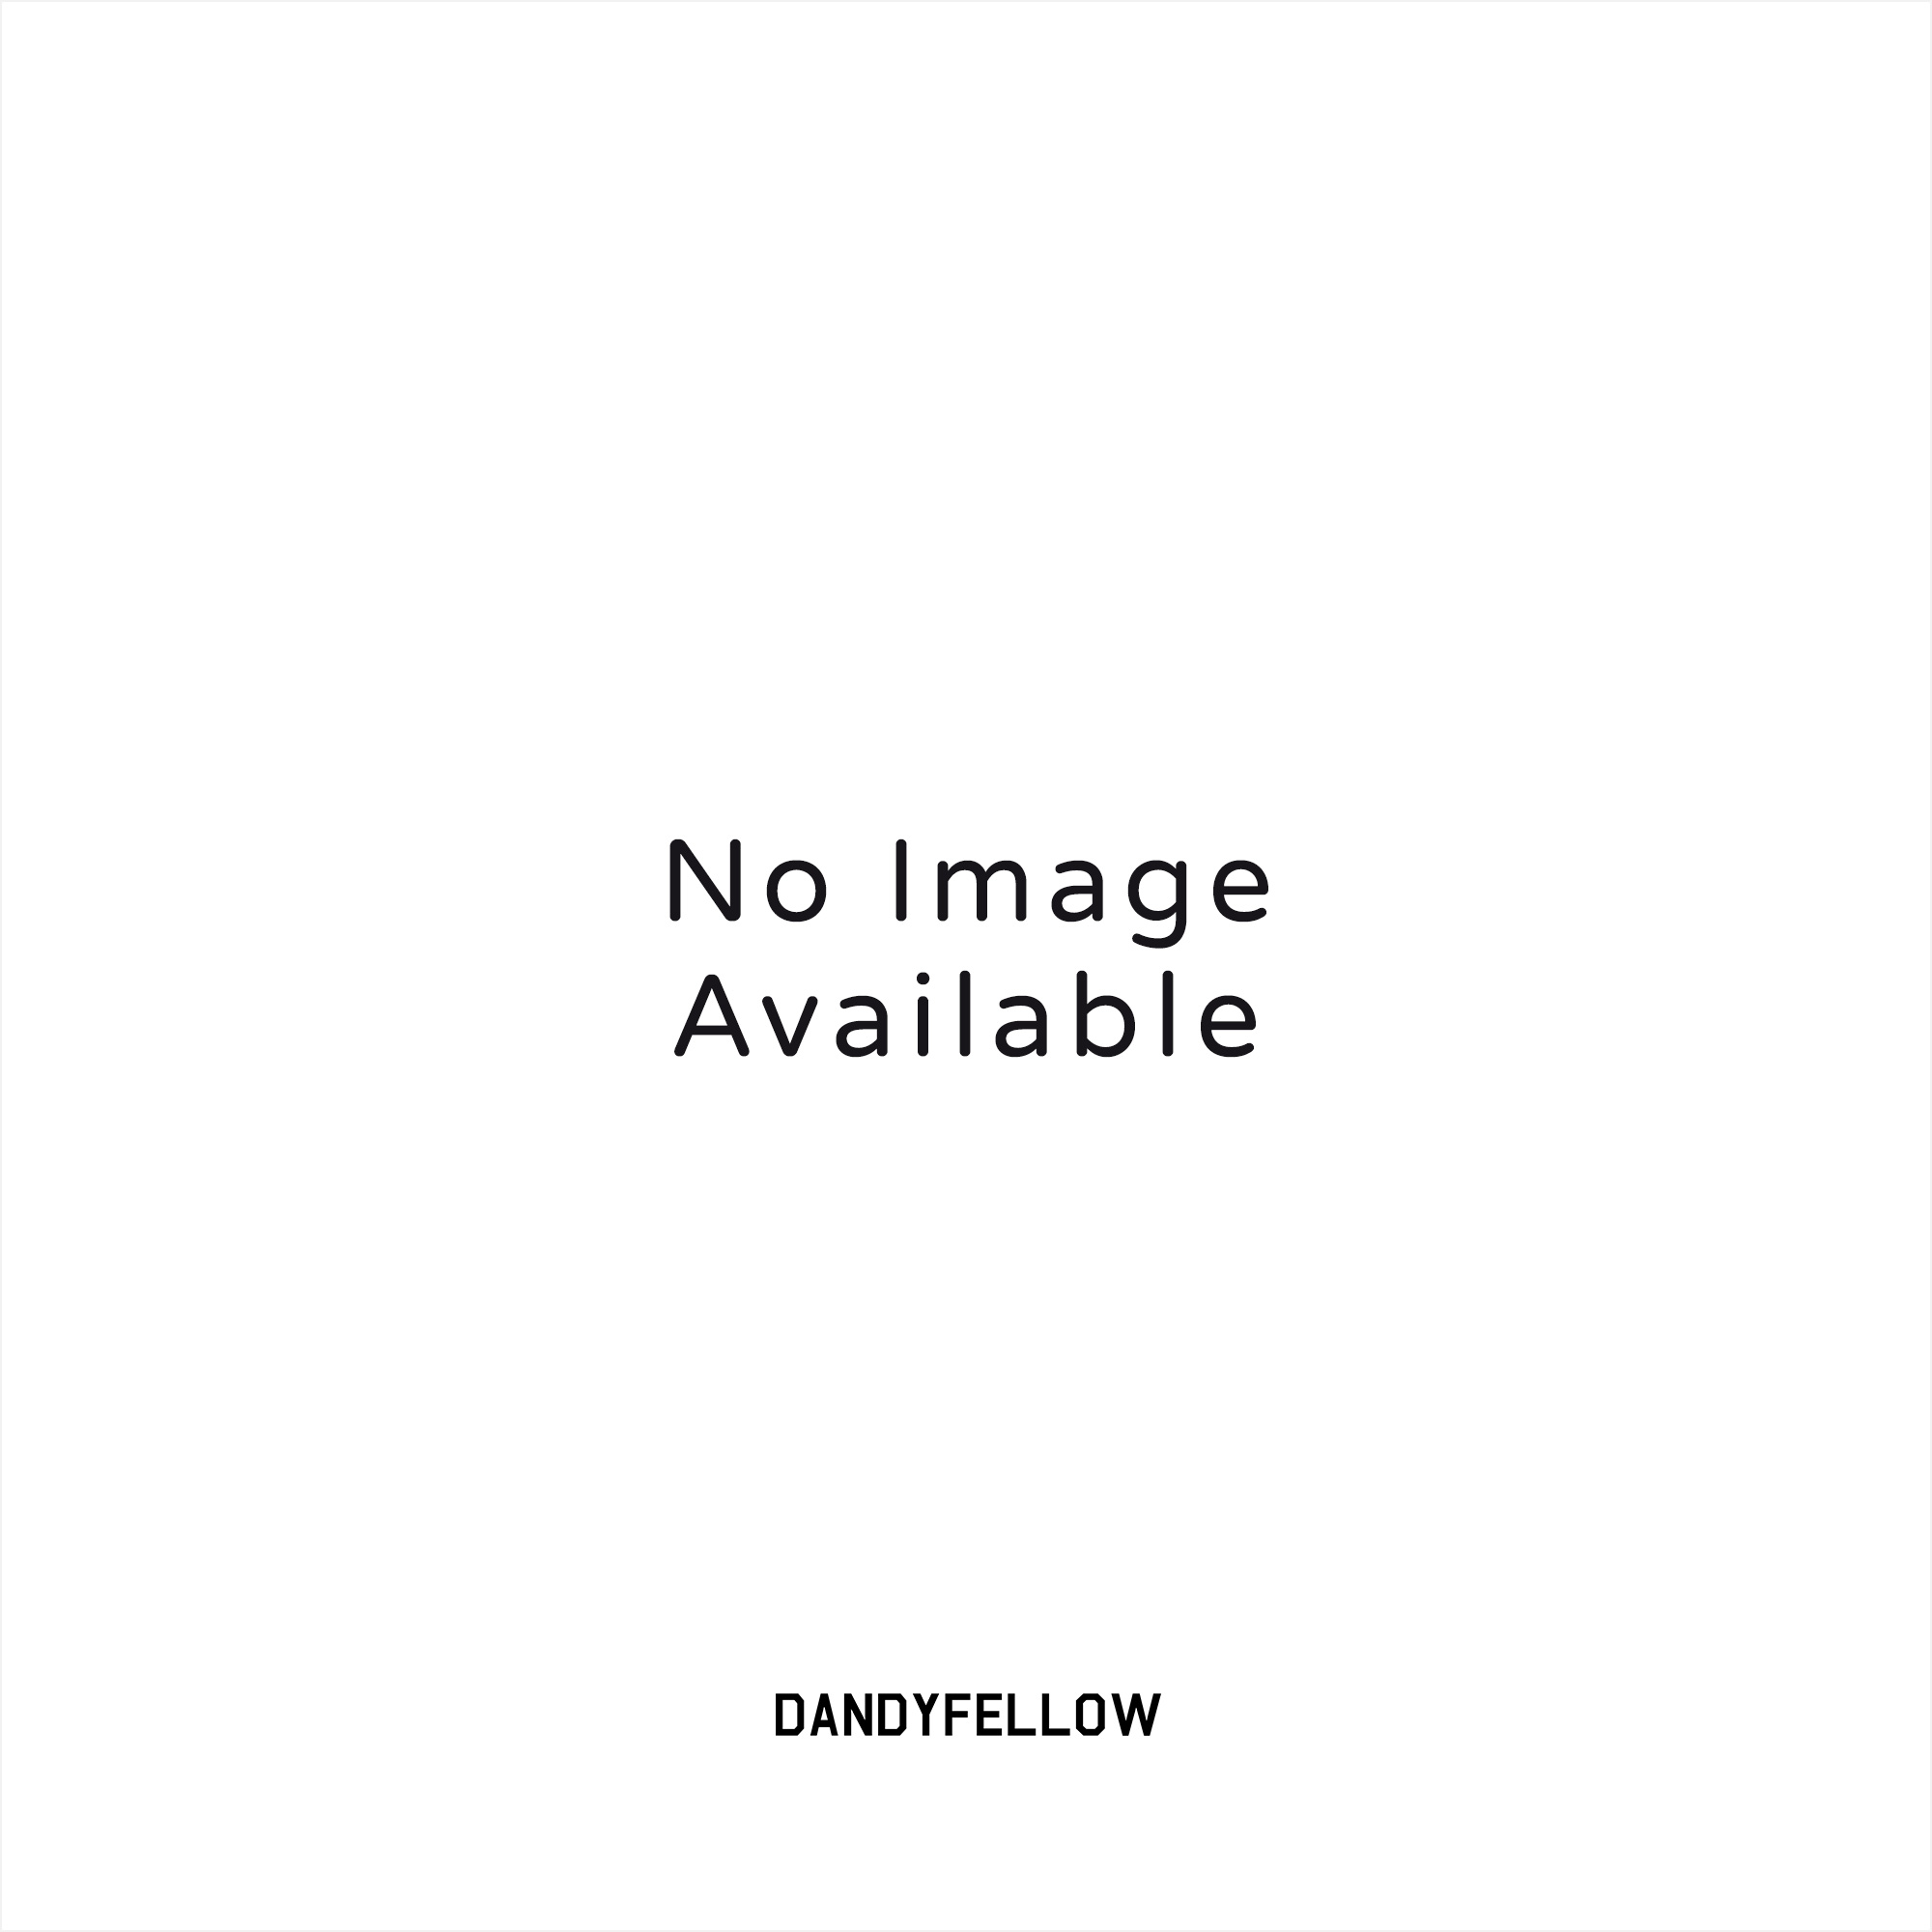 68e238bd1b Nike Womens Air Max 98 (Barley   Elemental Rose) at Dandy Fellow